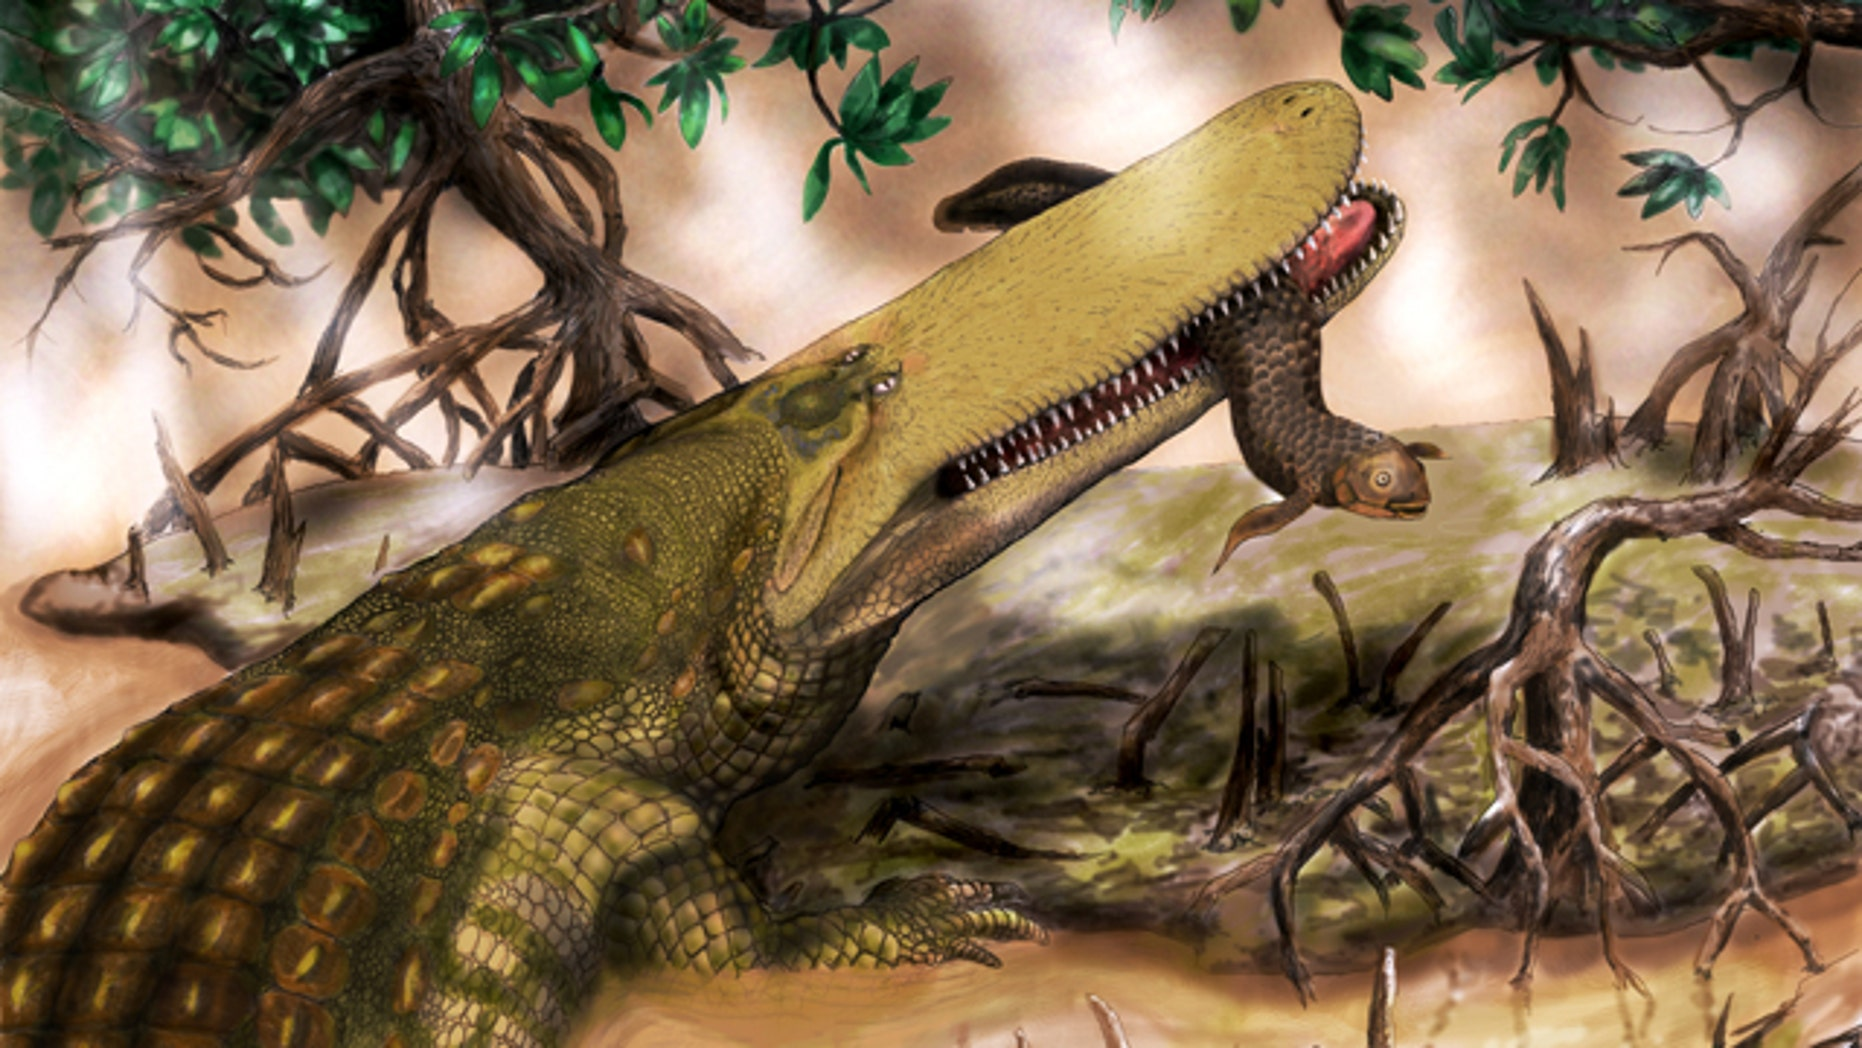 MU assistant professor Casey Holliday nicknamed Aegisuchus witmeri Shieldcroc because of its thick skinned shield.